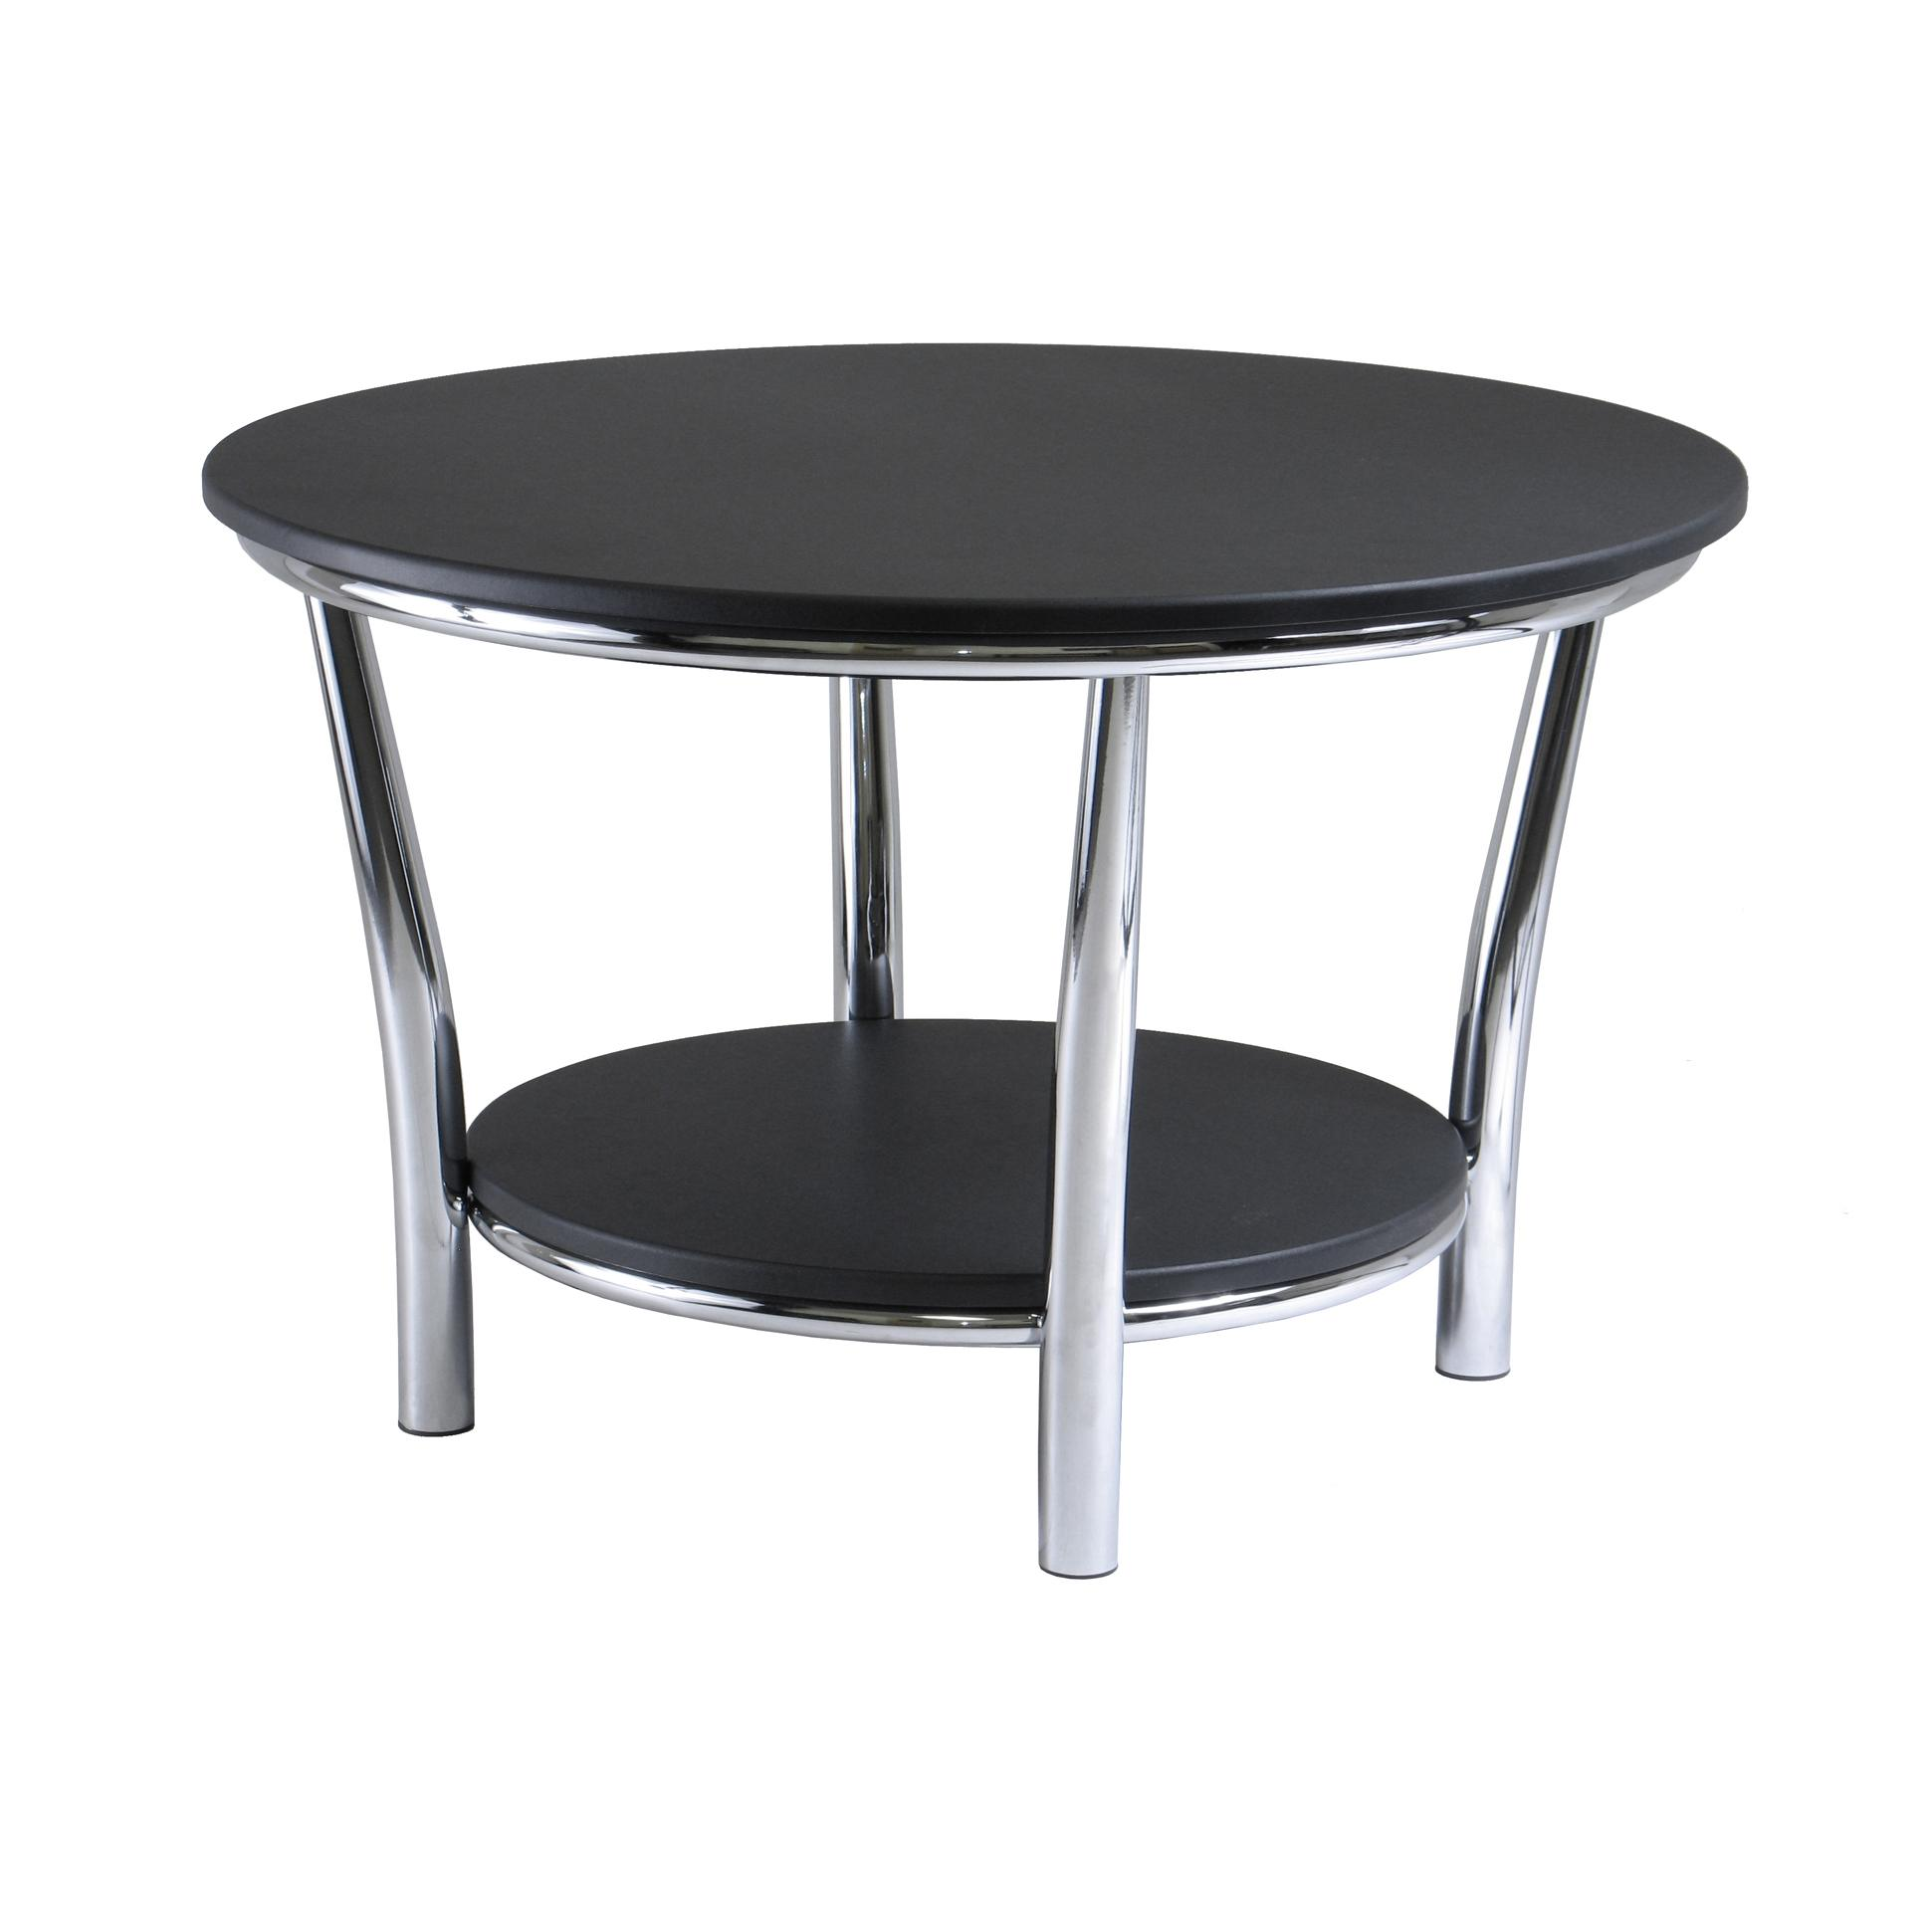 winsome wood round coffee table black top metal legs end from the manufacturer asian side cabinet homesense kelowna small green plastic patio high set ikea espresso magnolia